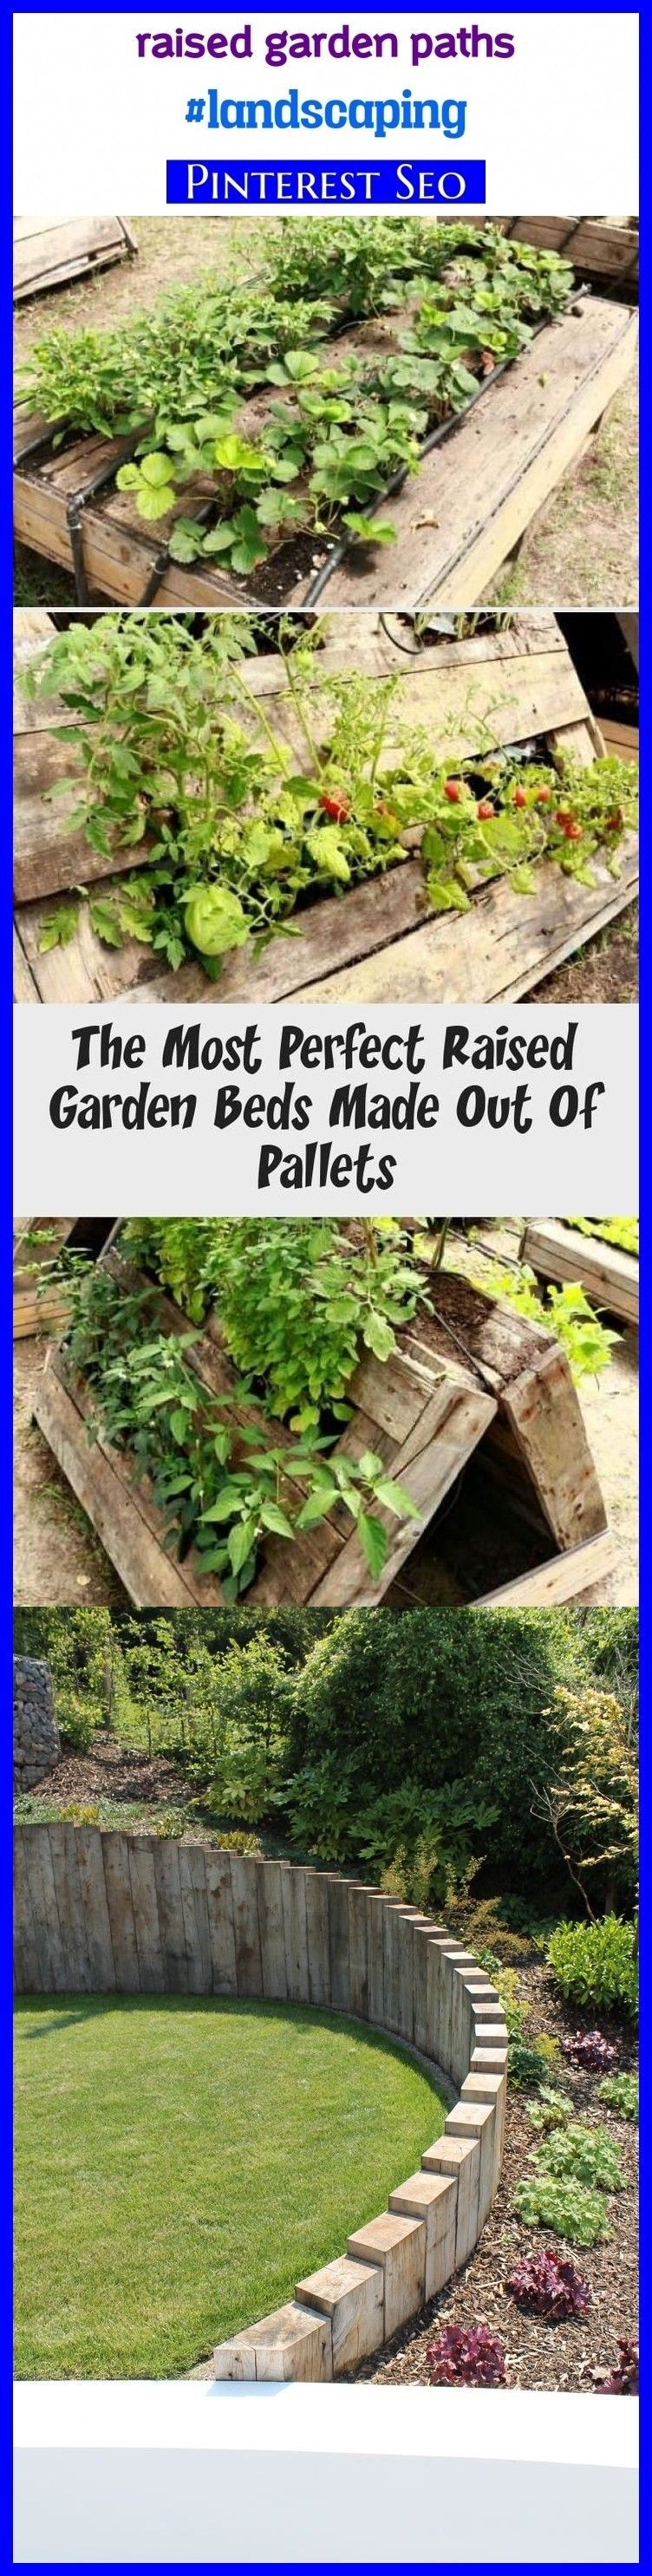 Photo of Raised garden paths #landscaping #seotips #seo #gardens. garden paths and walkwa…